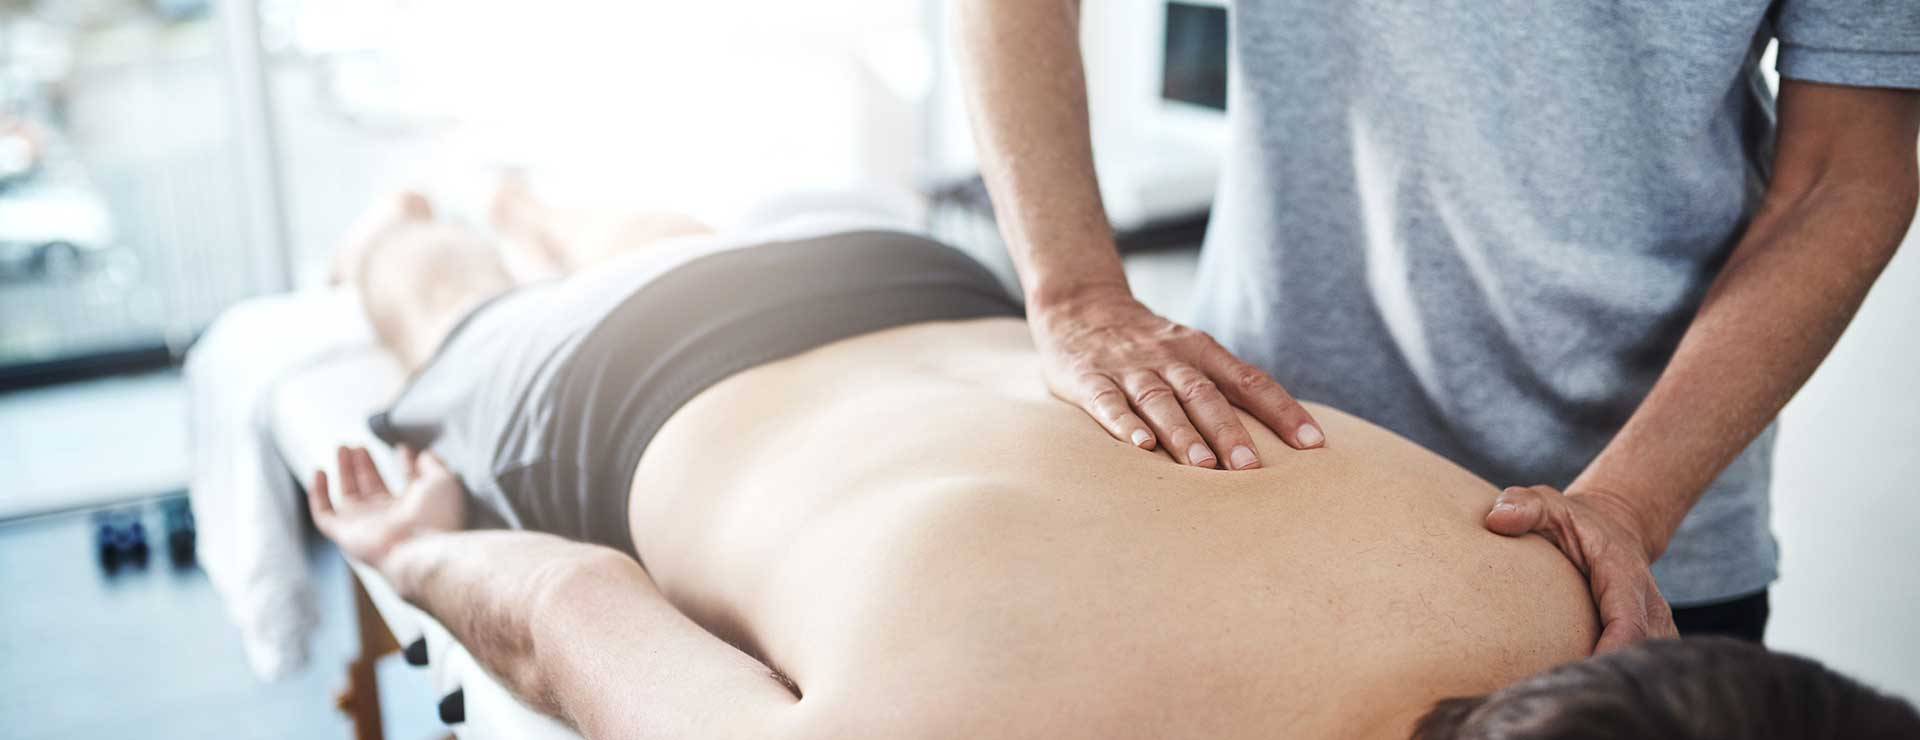 A person receives chiropractic care.